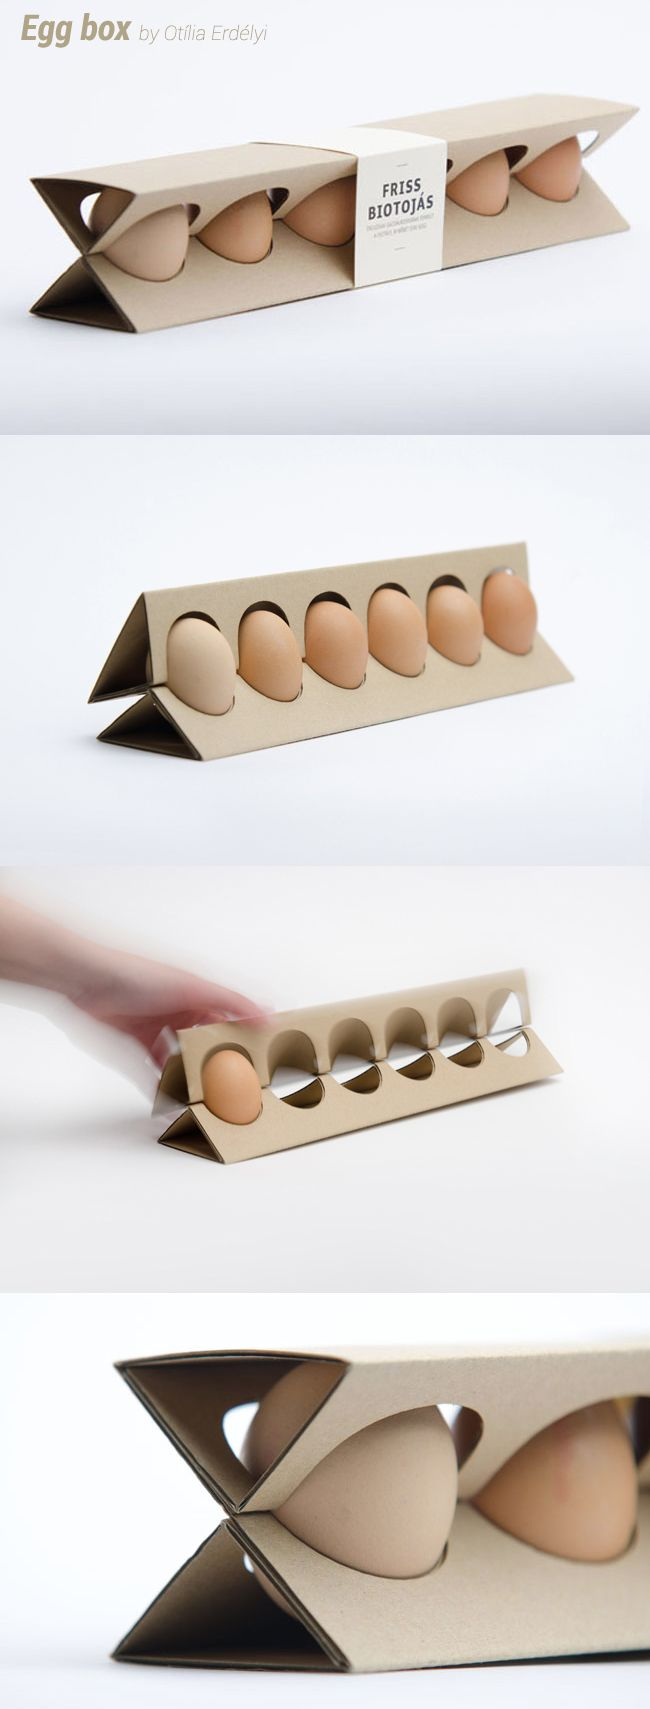 Egg Box - No, it isn't software exactly. But it is a great example of a design that works well at revealing the beauty and nature of the content to the user rather than hiding it, which is what UX design ought to do more.